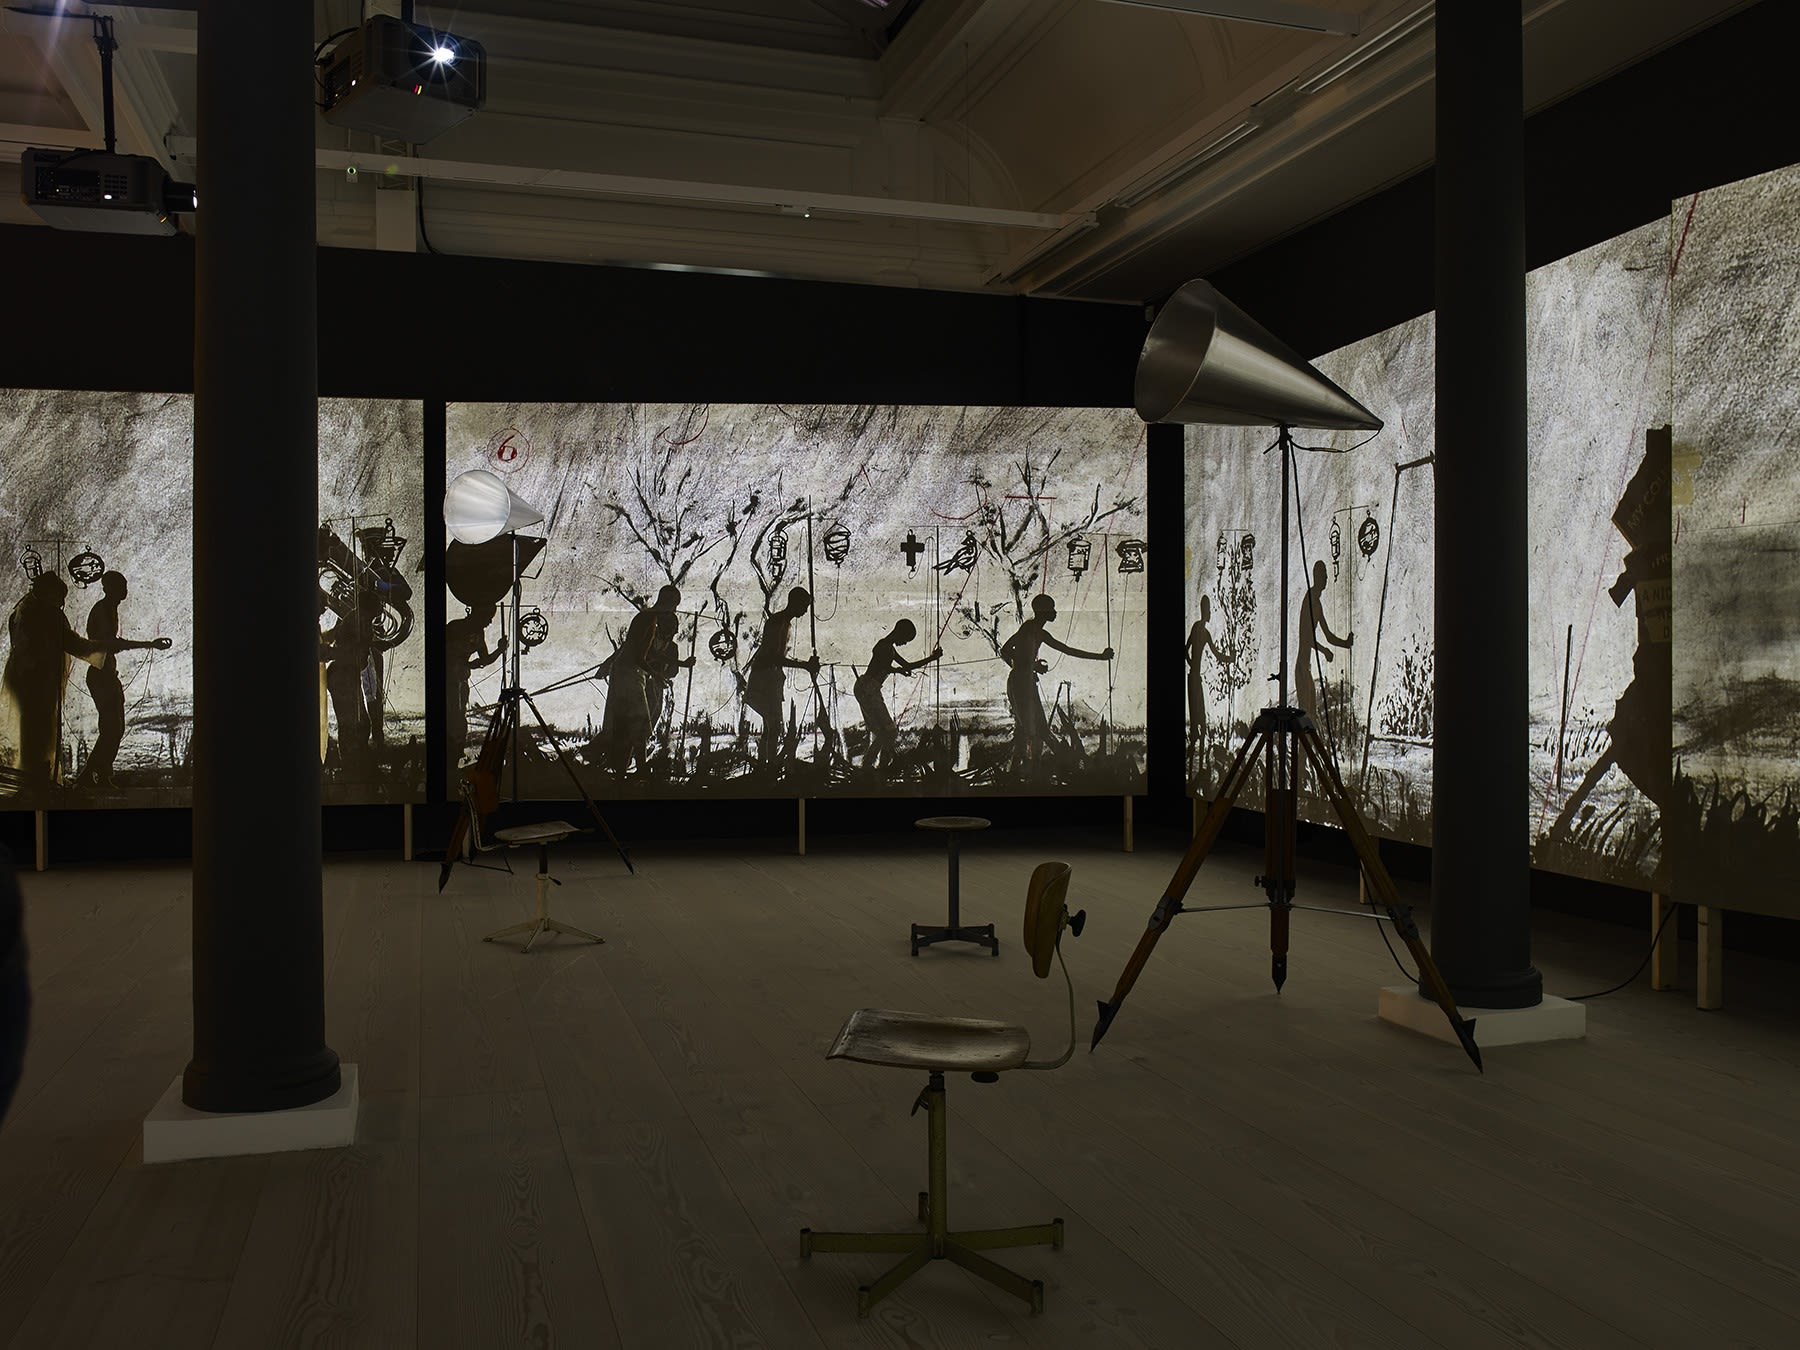 In a large dark space with columns, stools, and large objects resembling megaphones, several large video screens create a panoramic film, showing several characters, both people and sculptural representations of people's heads, walking through a marsh.